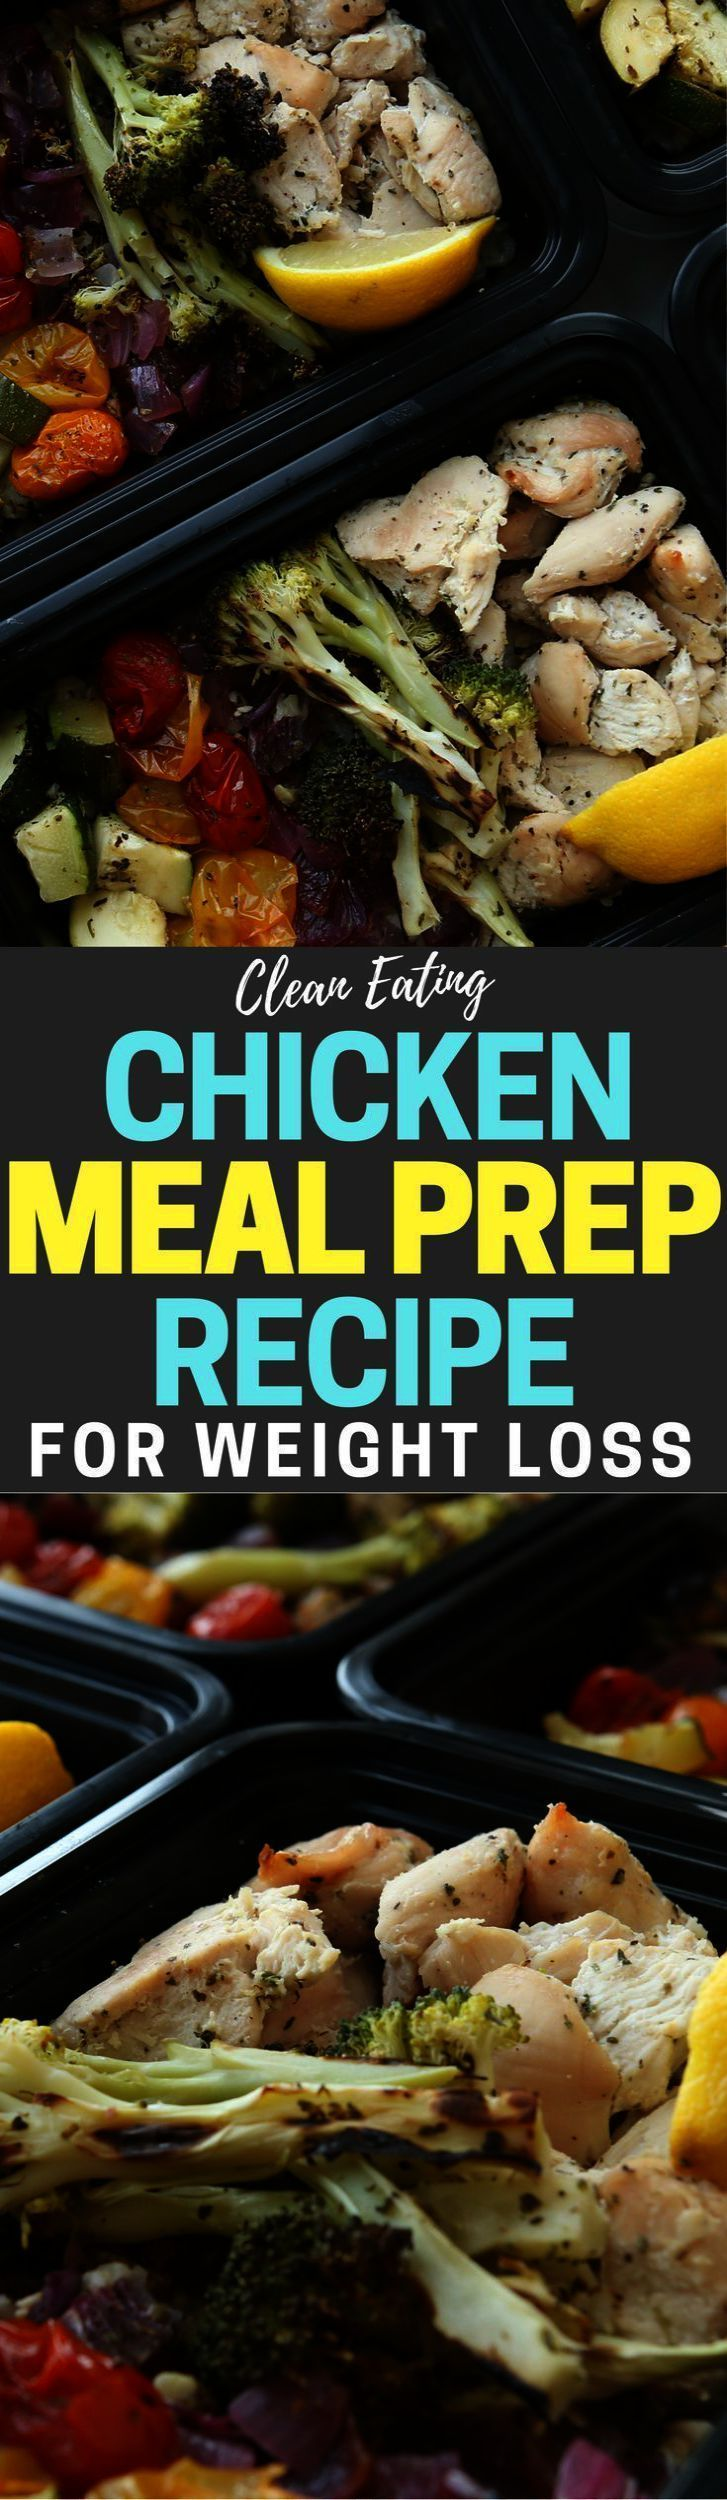 Clean Eating Meal Plan Pescatarian opposite Clean Eating For Lunch after Healthy Eating Habits Clipart unlike Clean Eating Meal Plan To Gain Weight ov... - #clean #eating #lunch #opposite #pescatarian - #new #cleaneatingforbeginners